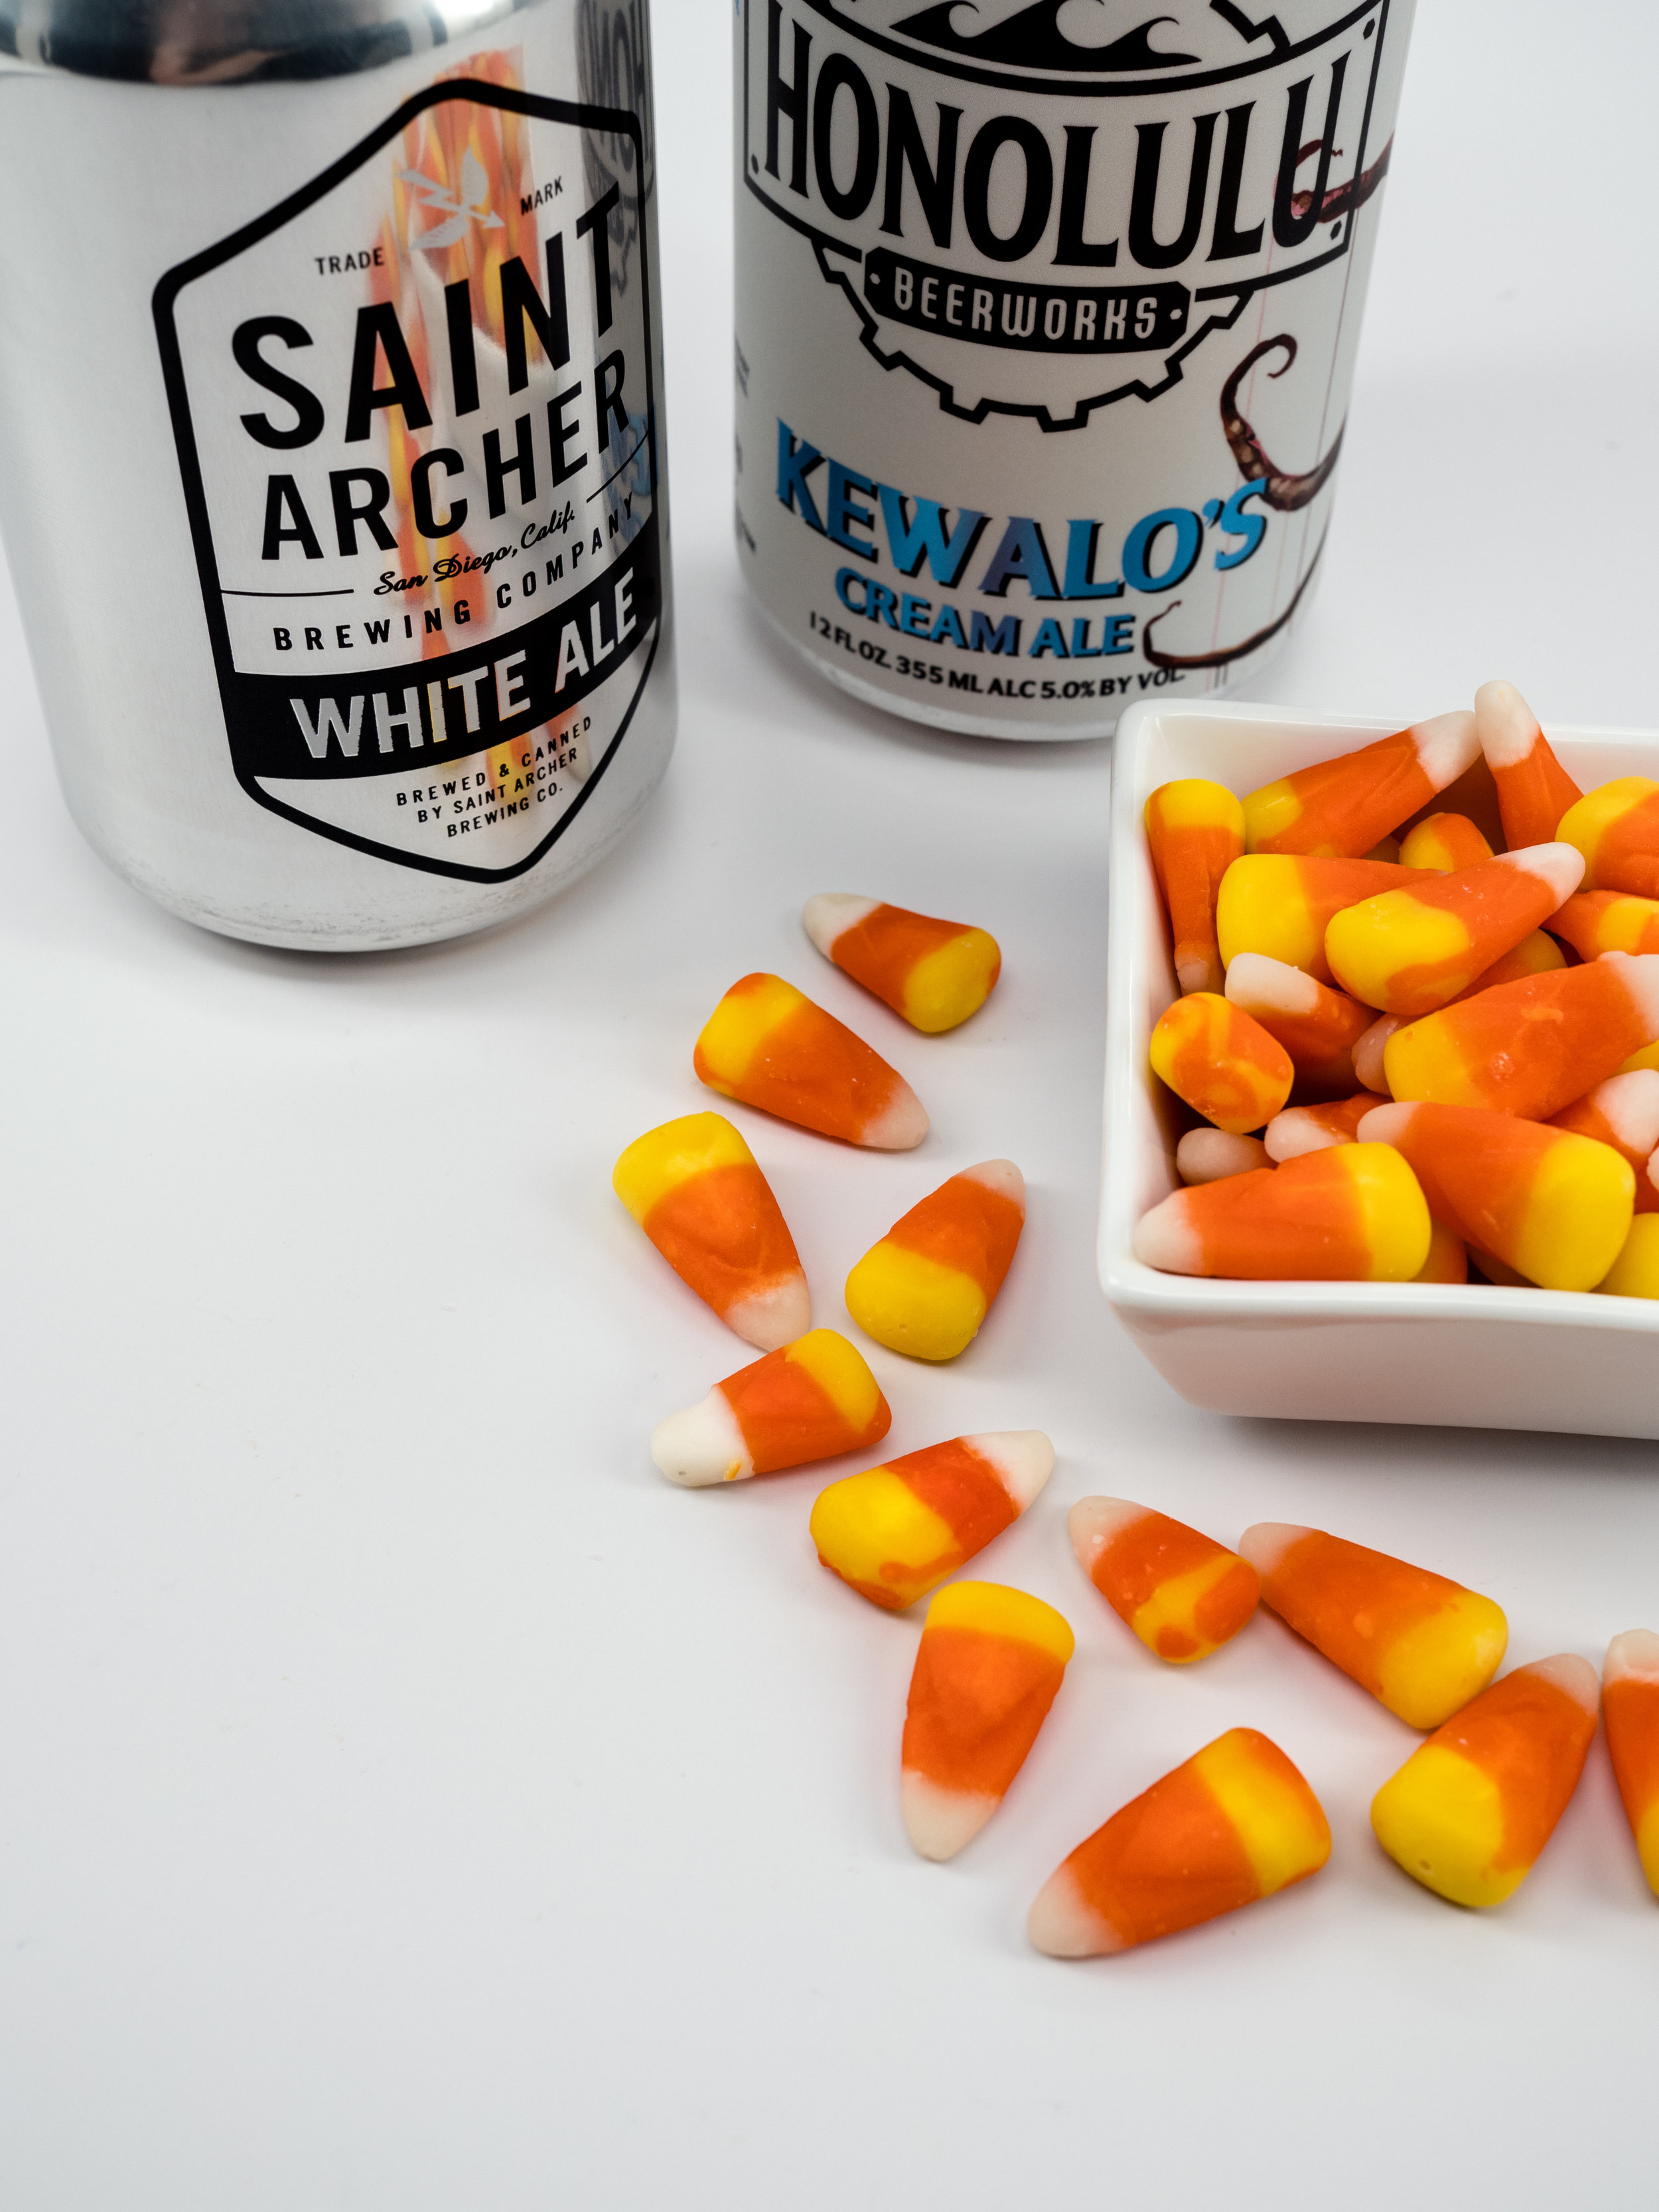 Musings by the Glass - Tips for Pairing Beer and Halloween Candy - Candy Corn and Saint Archer White Ale, Honolulu Beerworks Cream Ale